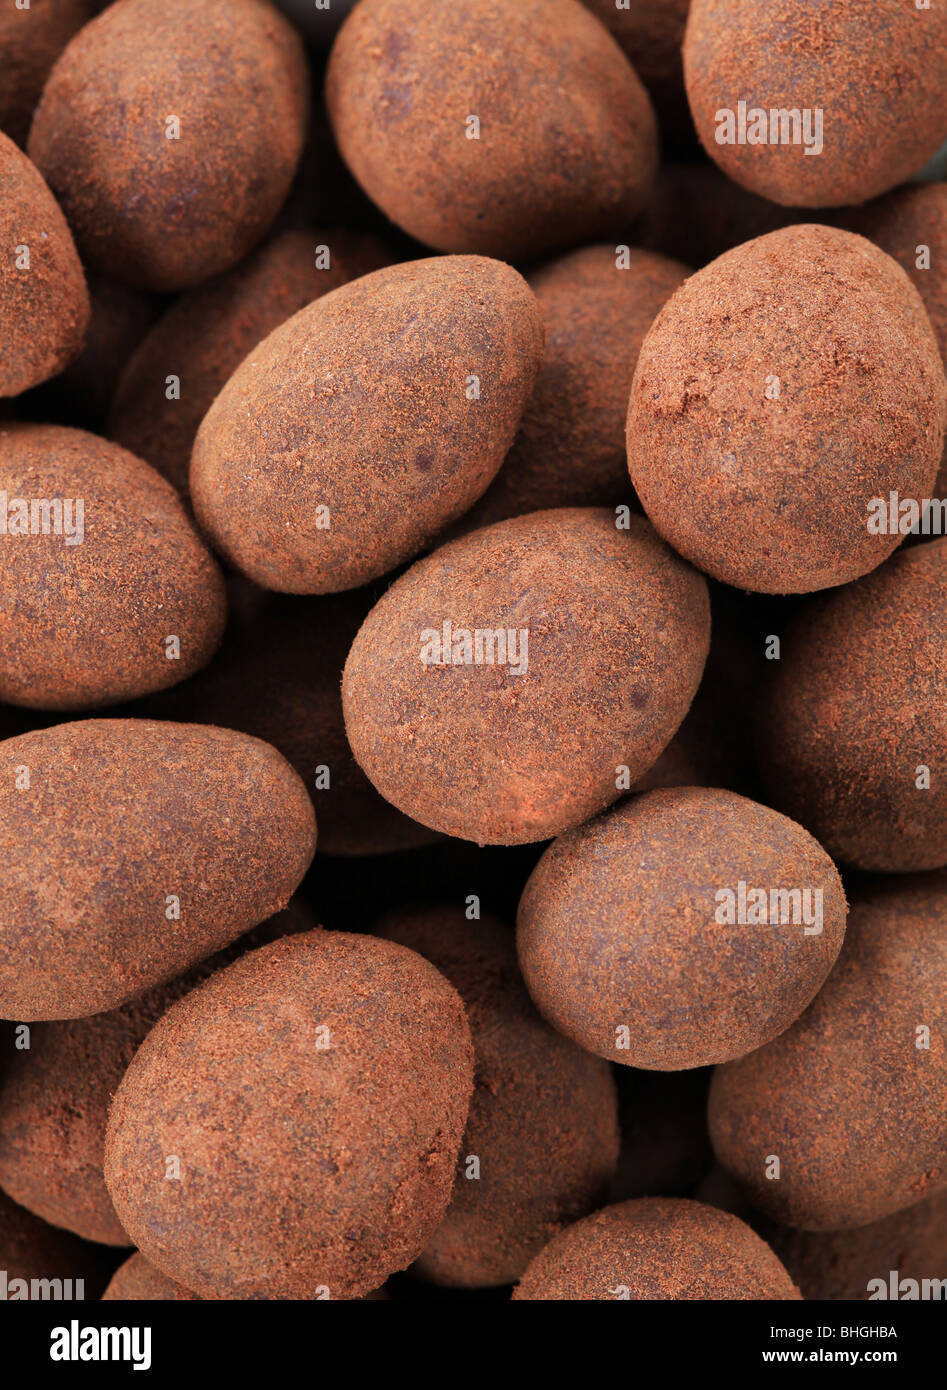 Chocolate Covered Almonds Stock Photos & Chocolate Covered Almonds ...